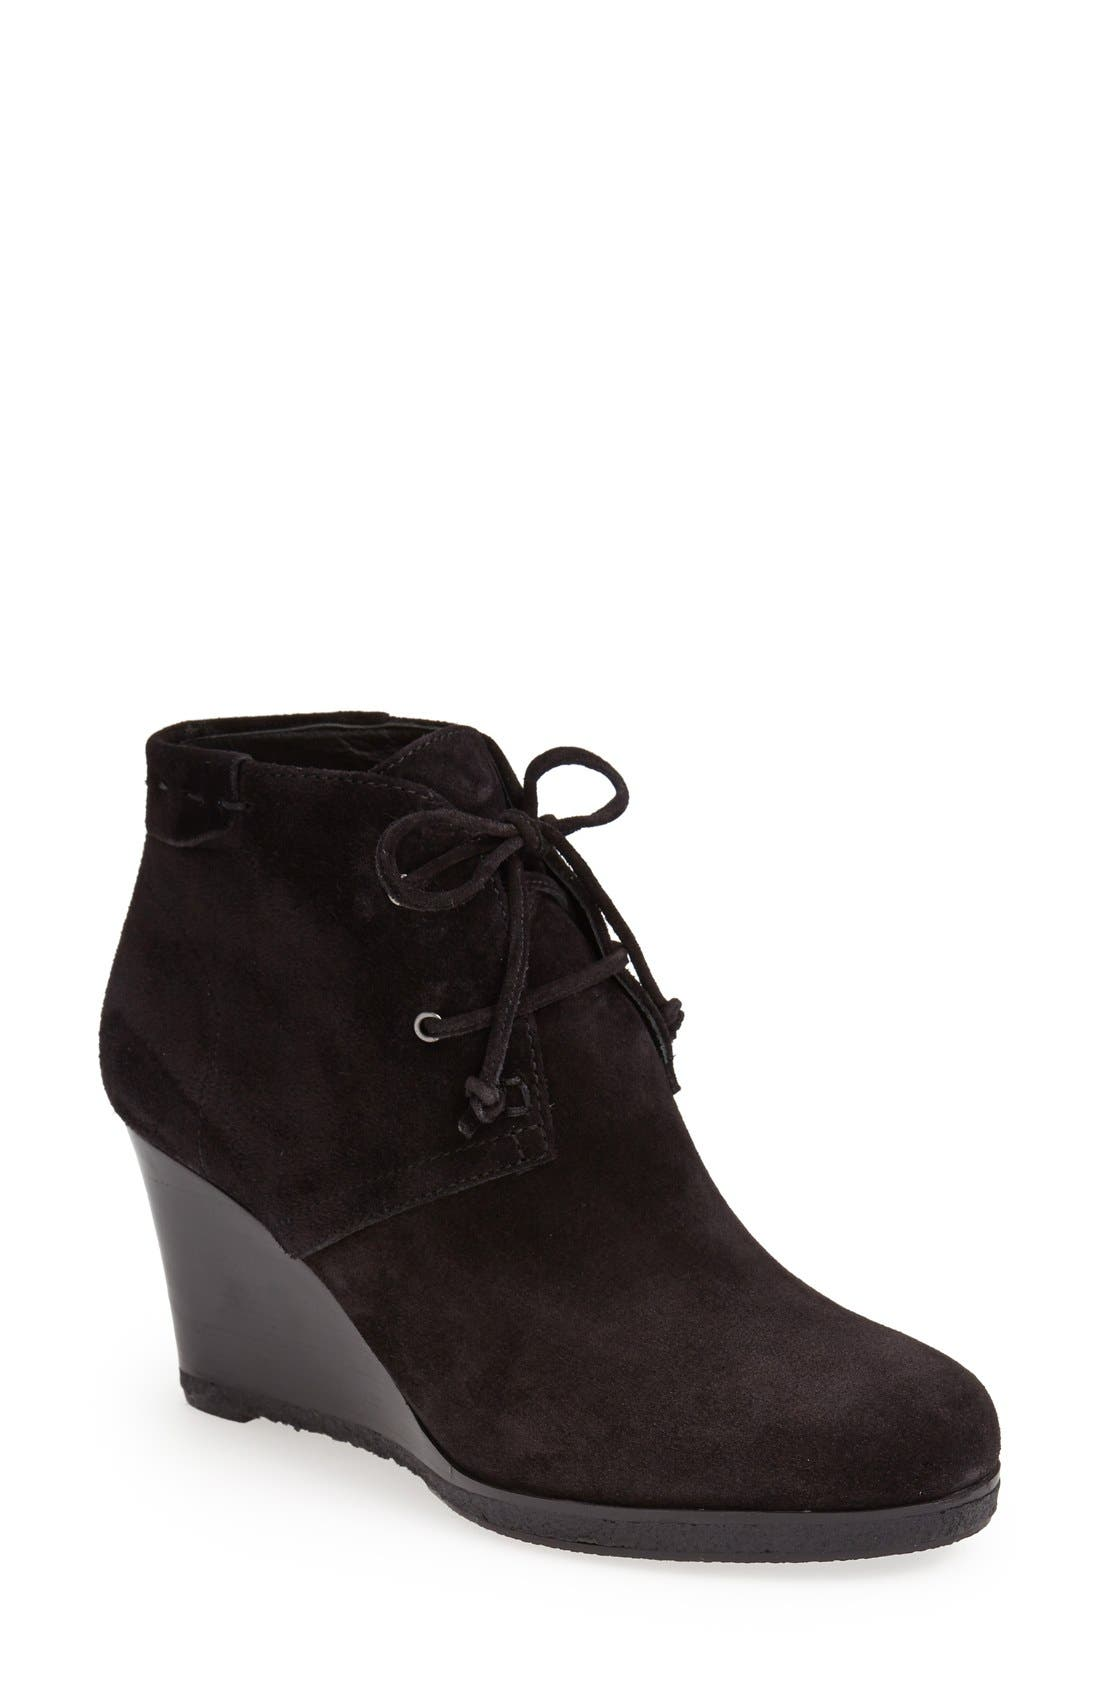 'Mirren' Wedge Bootie,                             Main thumbnail 1, color,                             002